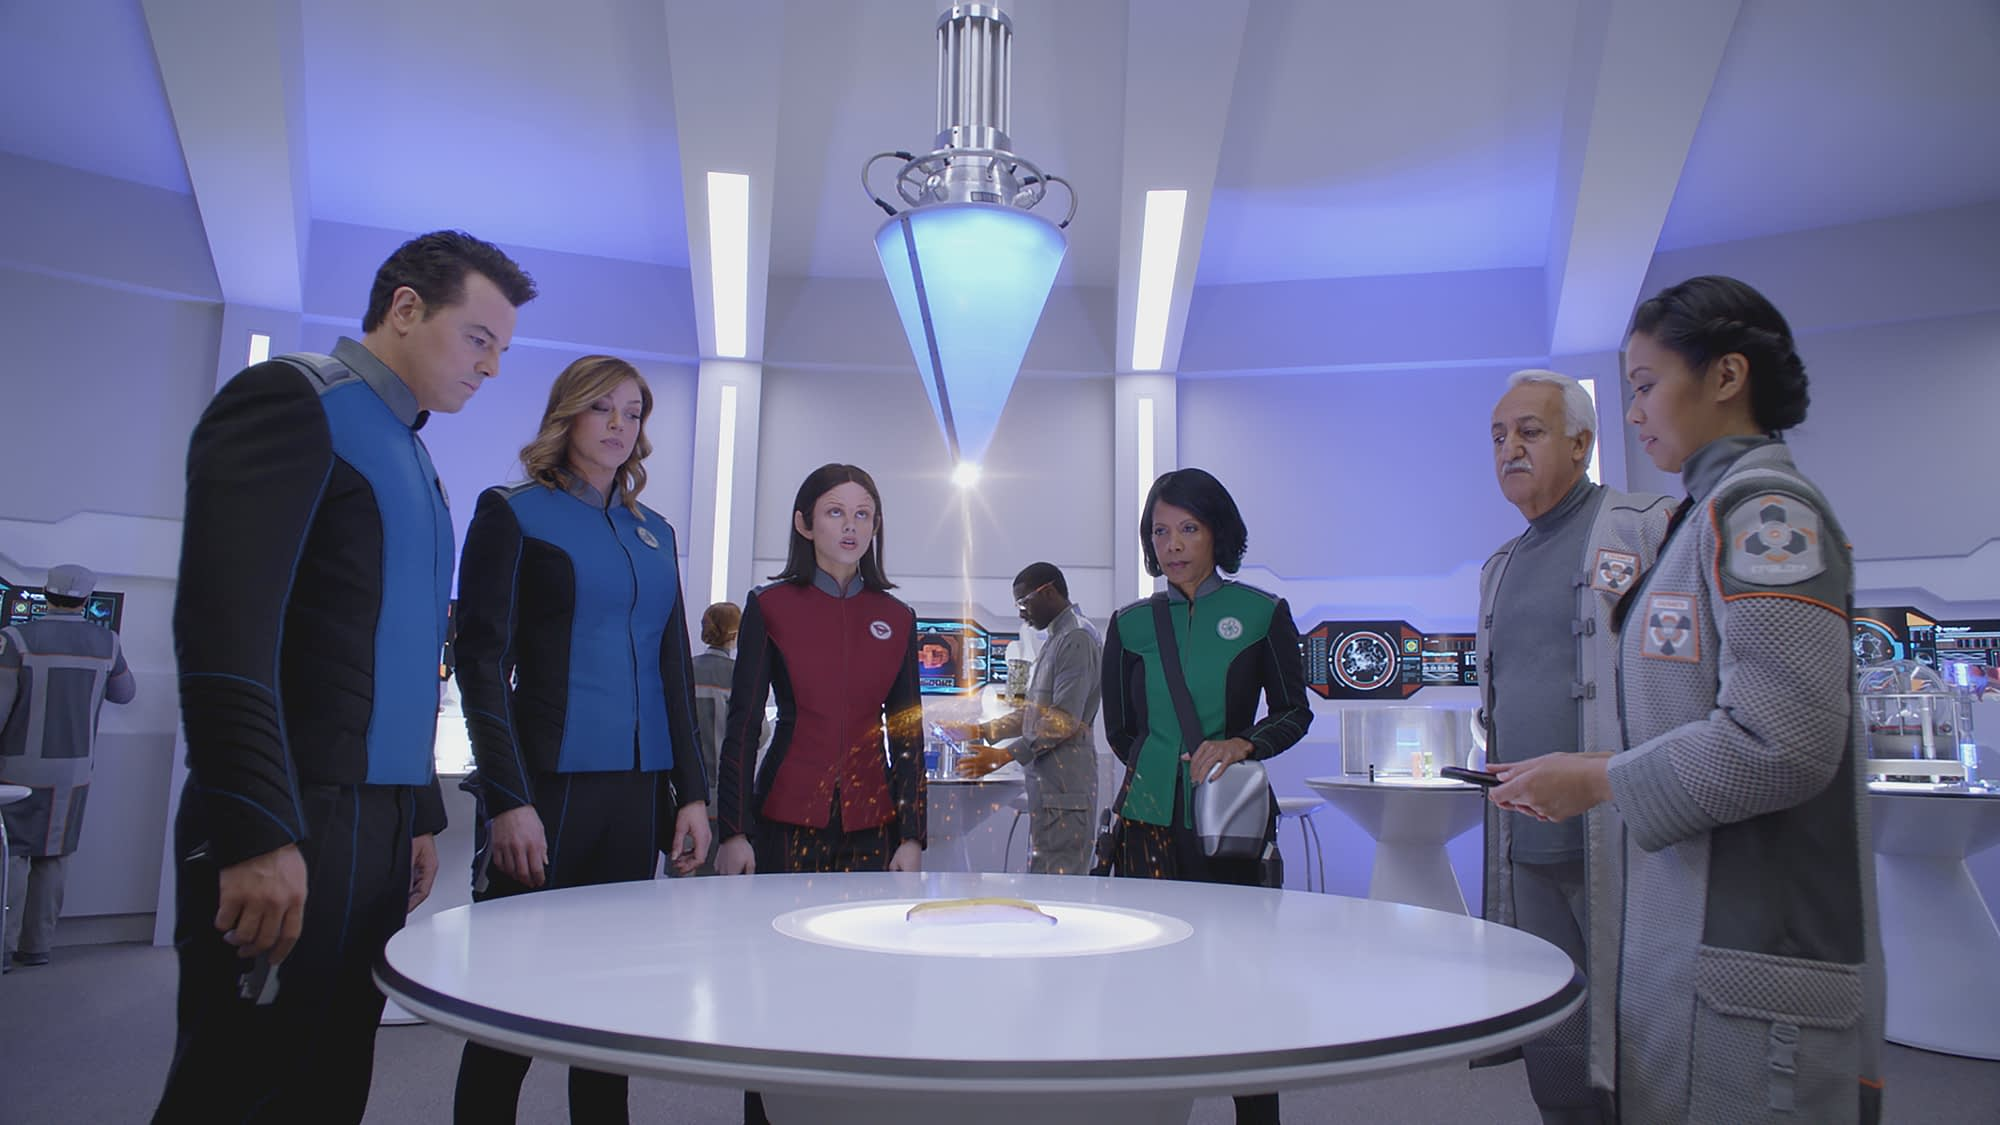 THE ORVILLE: L-R: Seth MacFarlane, Adrianne Palicki, Halston Sage, Penny Johnson Jerald, guest star Brian George and guest star Christine Corpuz in THE ORVILLE premiering this fall on FOX. ©2017 Fox Broadcasting Co. Cr: FOX